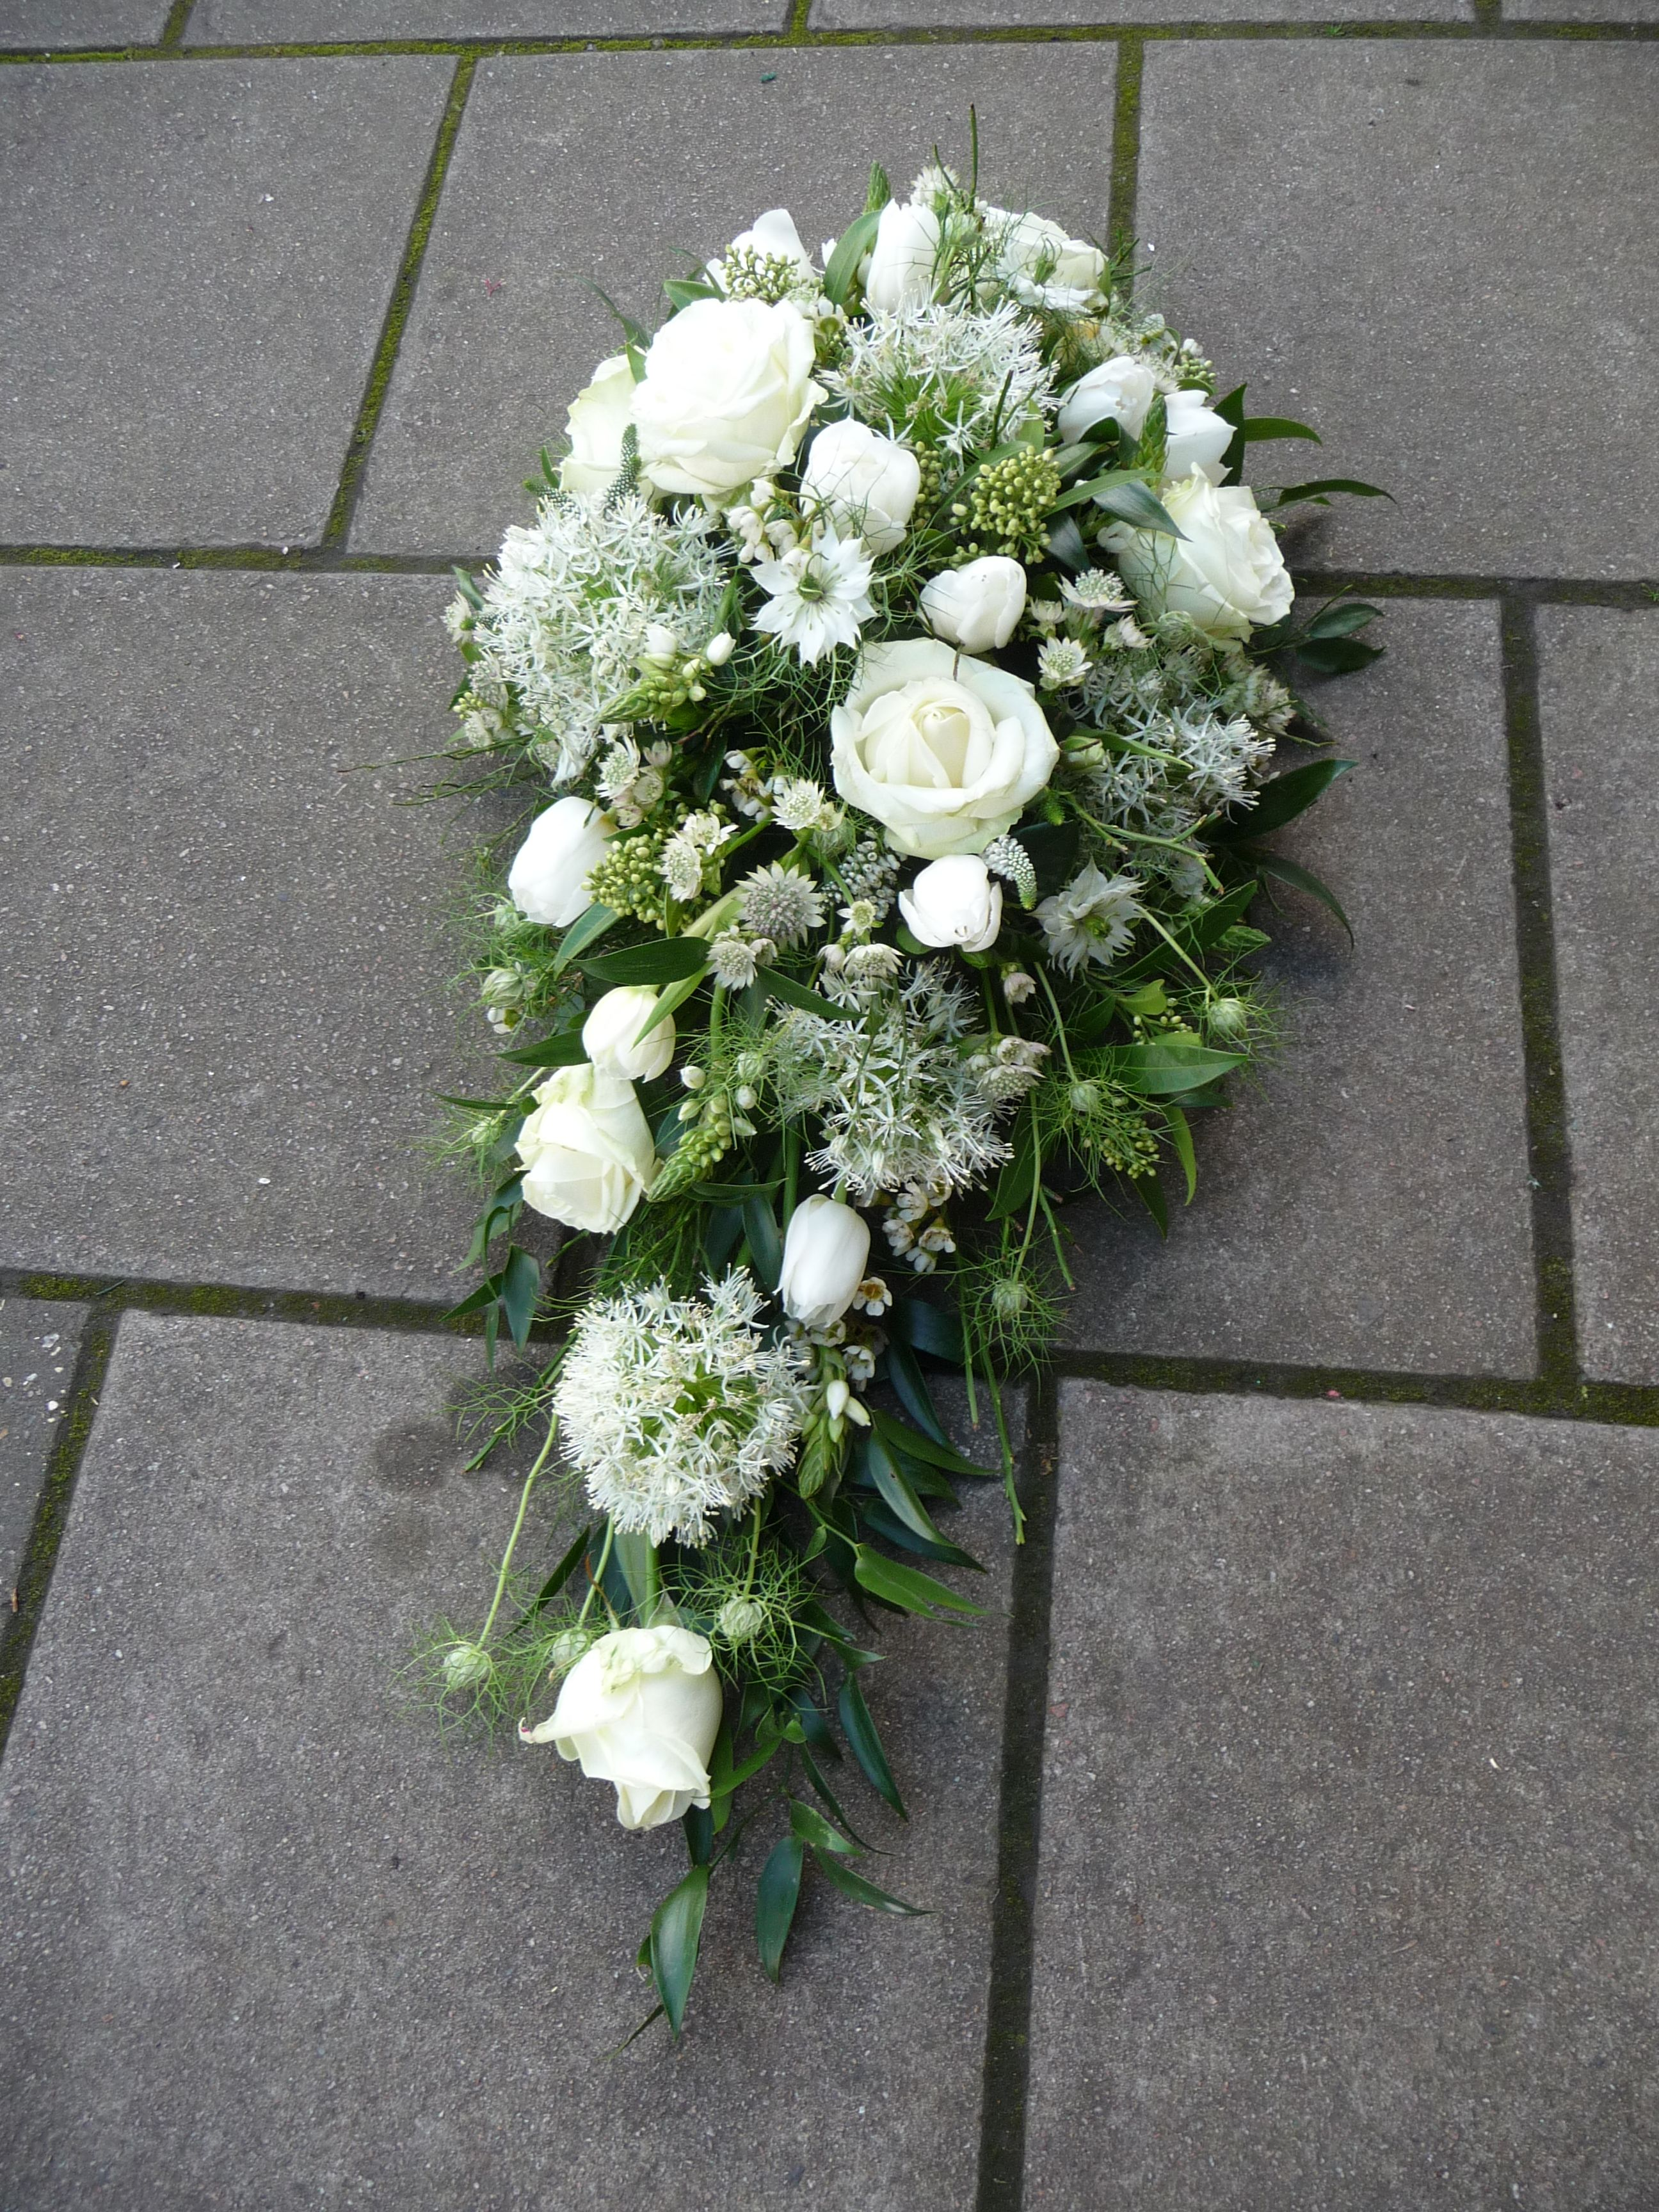 A stunning white single ended spray seasons funeral tributes seasons florists offer high quality flowers in wimbledon london and the surrounding areas creations for all occasions same day flower delivery in izmirmasajfo